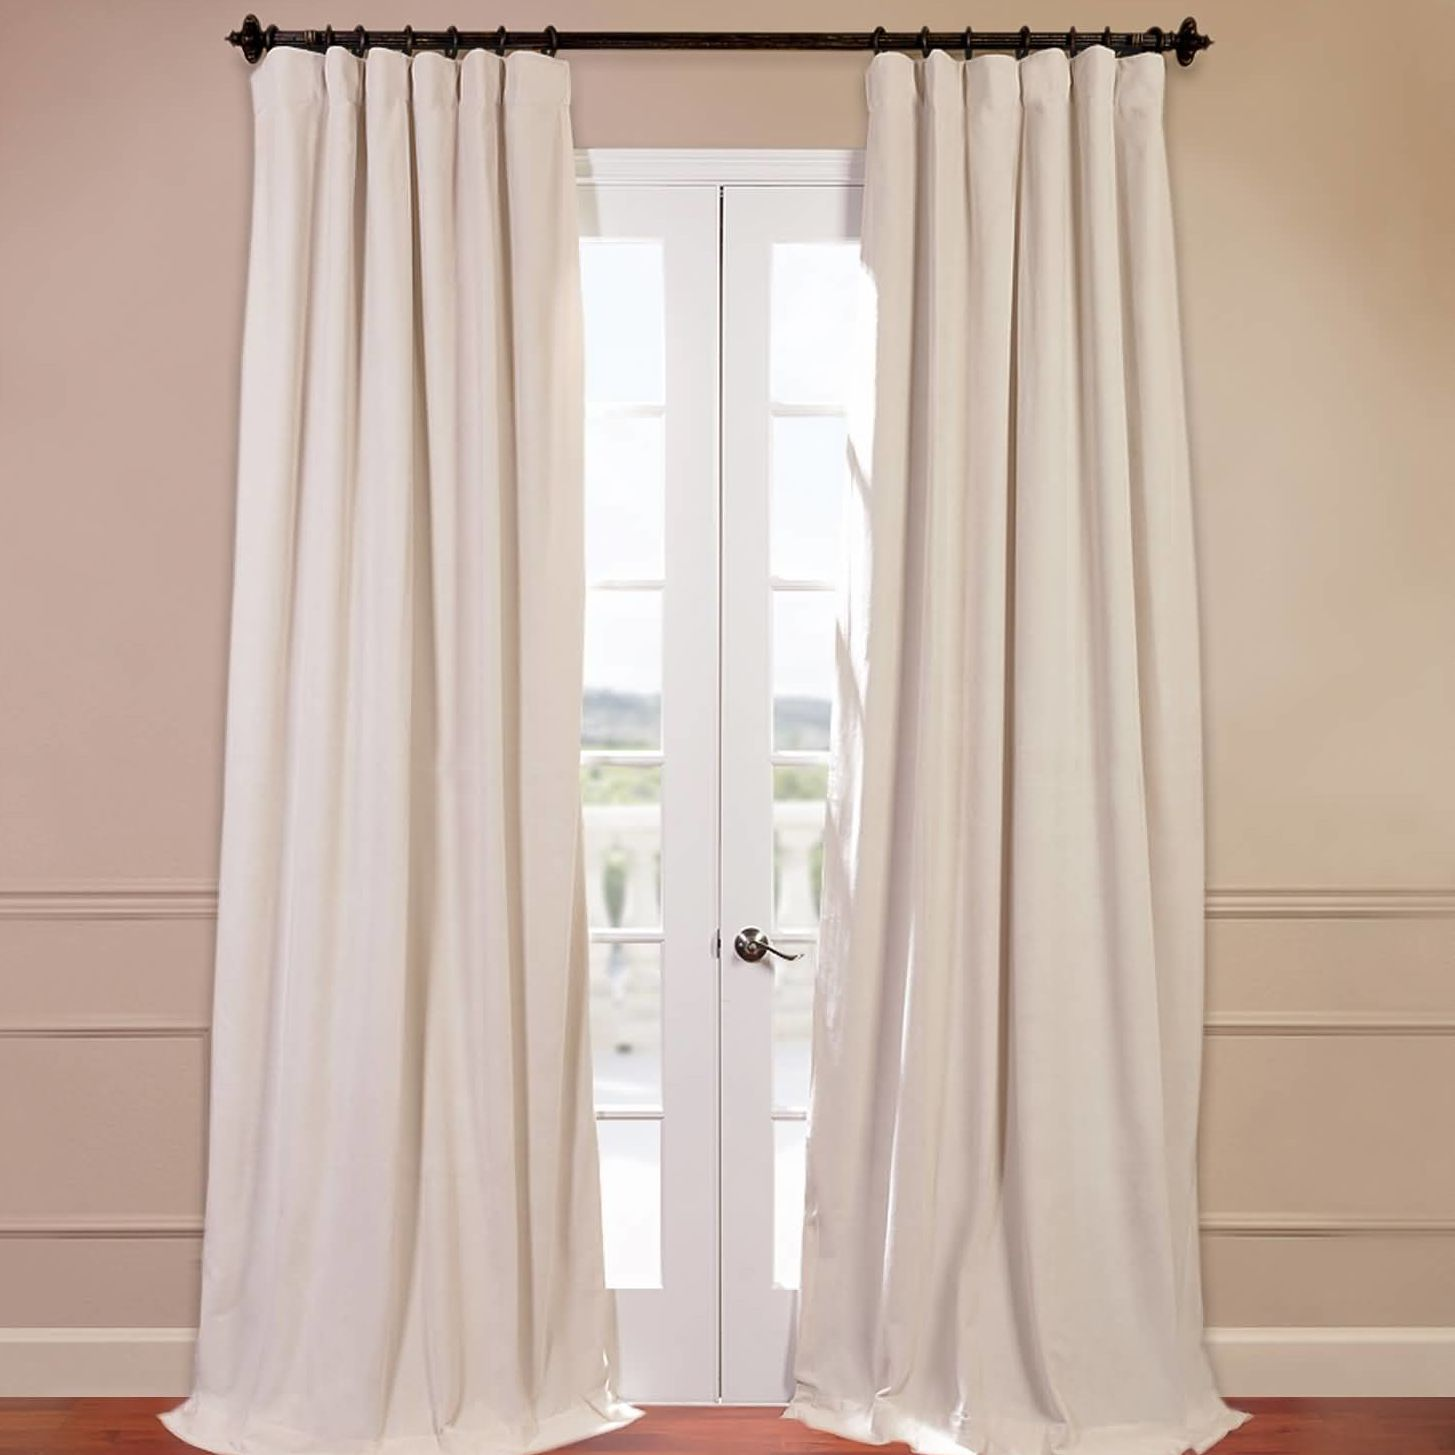 images curtain made velvet extraideith full impressive size white of panels curtains ready black net gopelling ikea extra faux grommet leather andhite off top grey inspirations